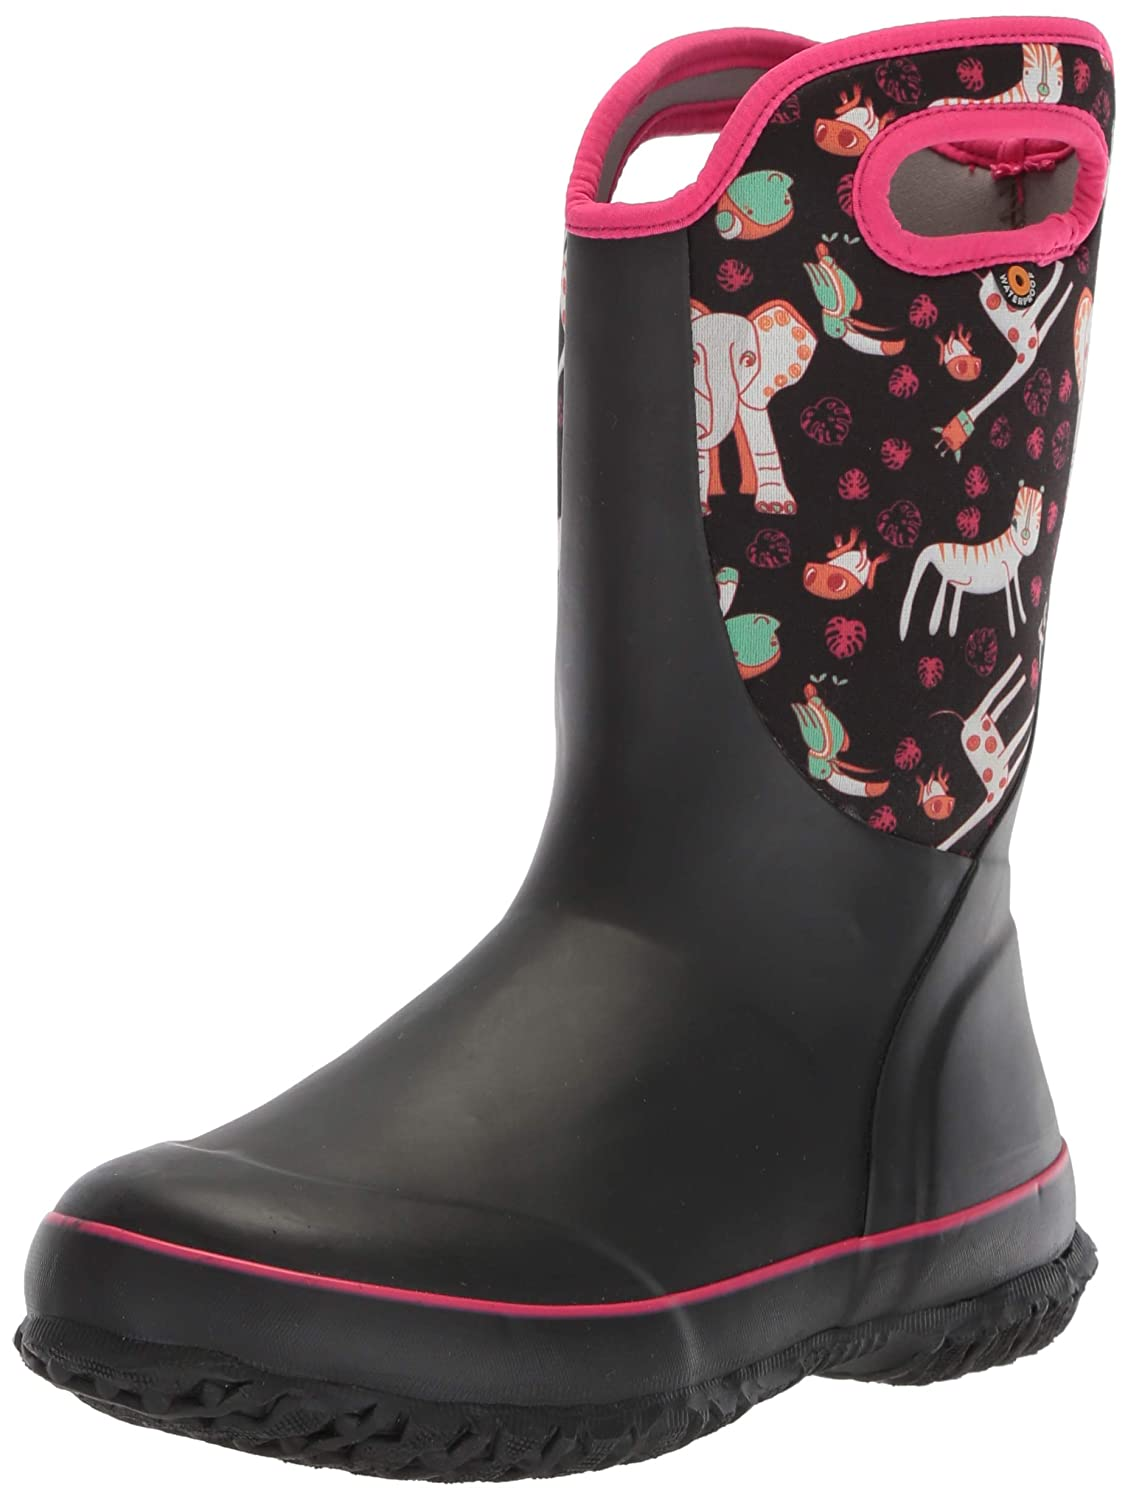 Bogs Kids' Slushie Snow Boot 72289-062